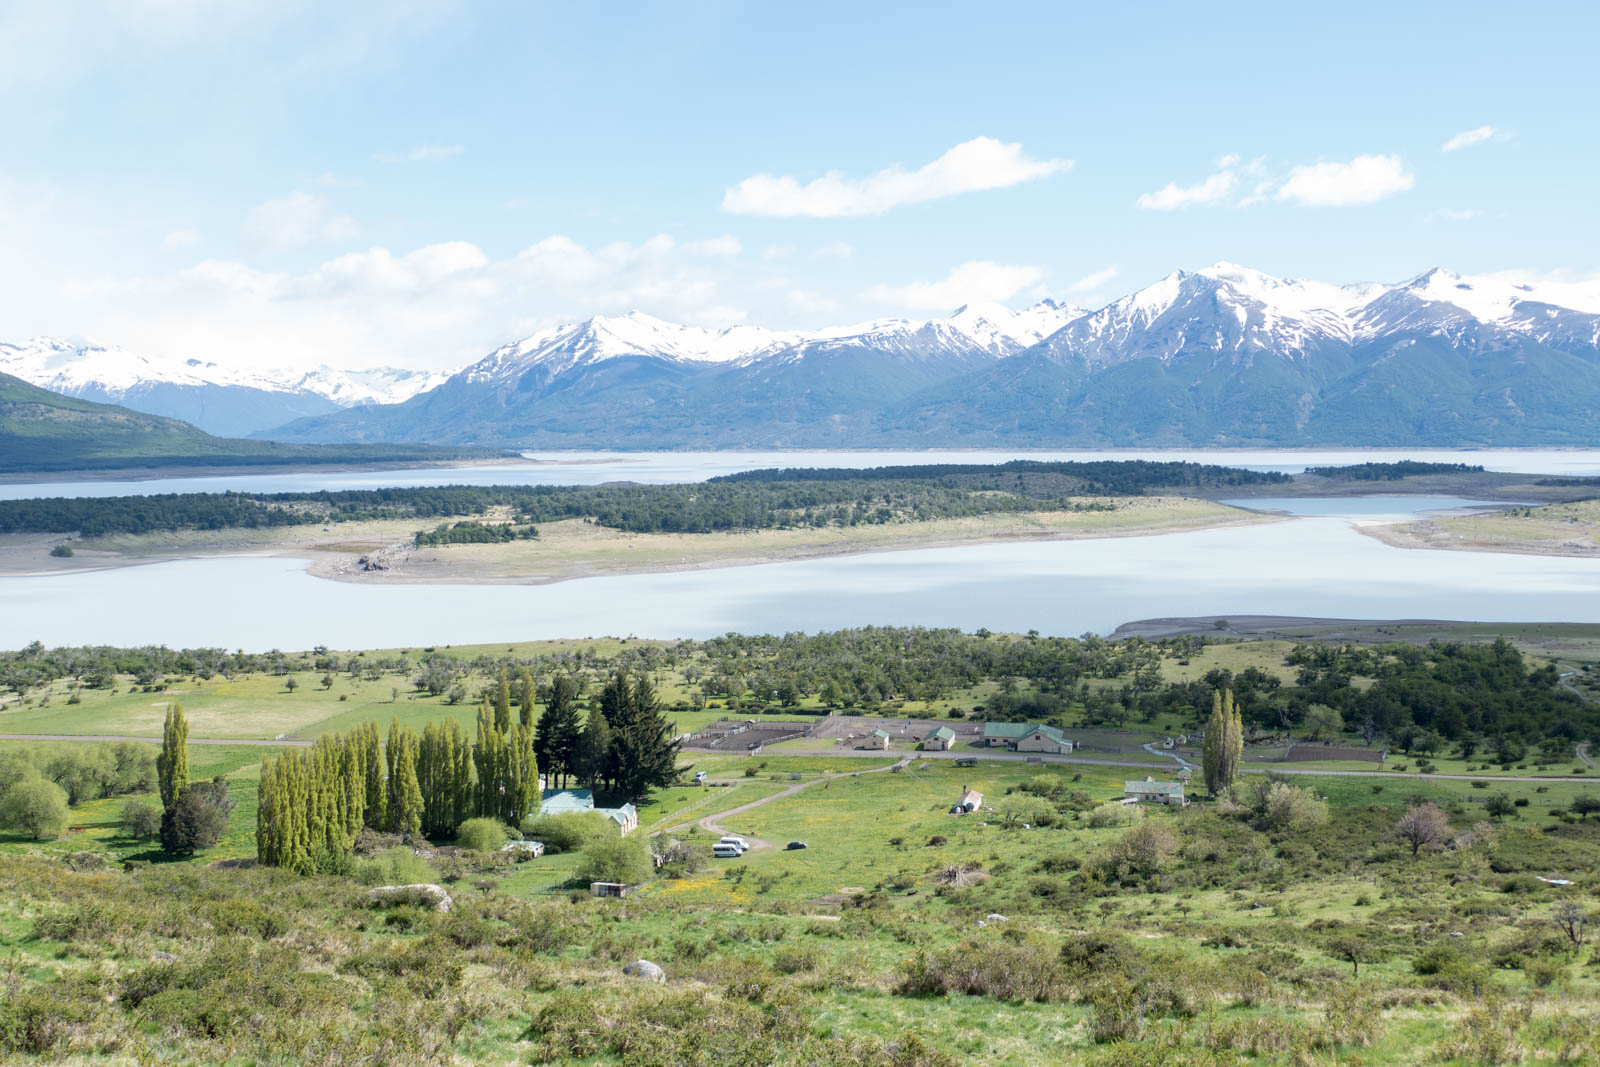 View of Nibepo Aike with Lago Roca and mountains behind